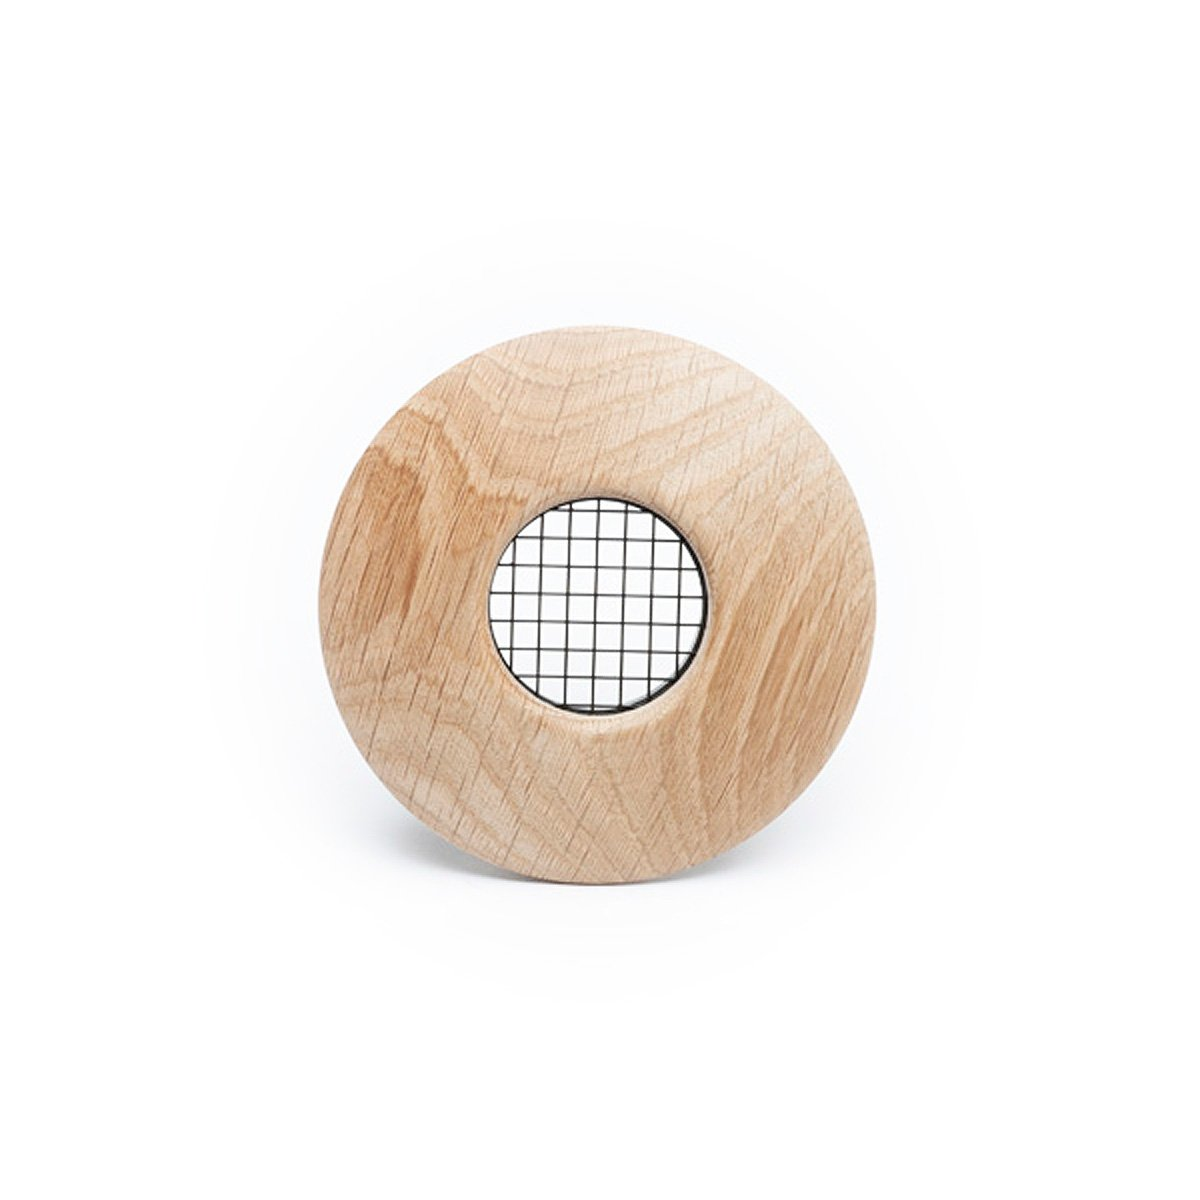 "Round Supply Outlet, 2"", White Oak wood, TFS, 6/bx"